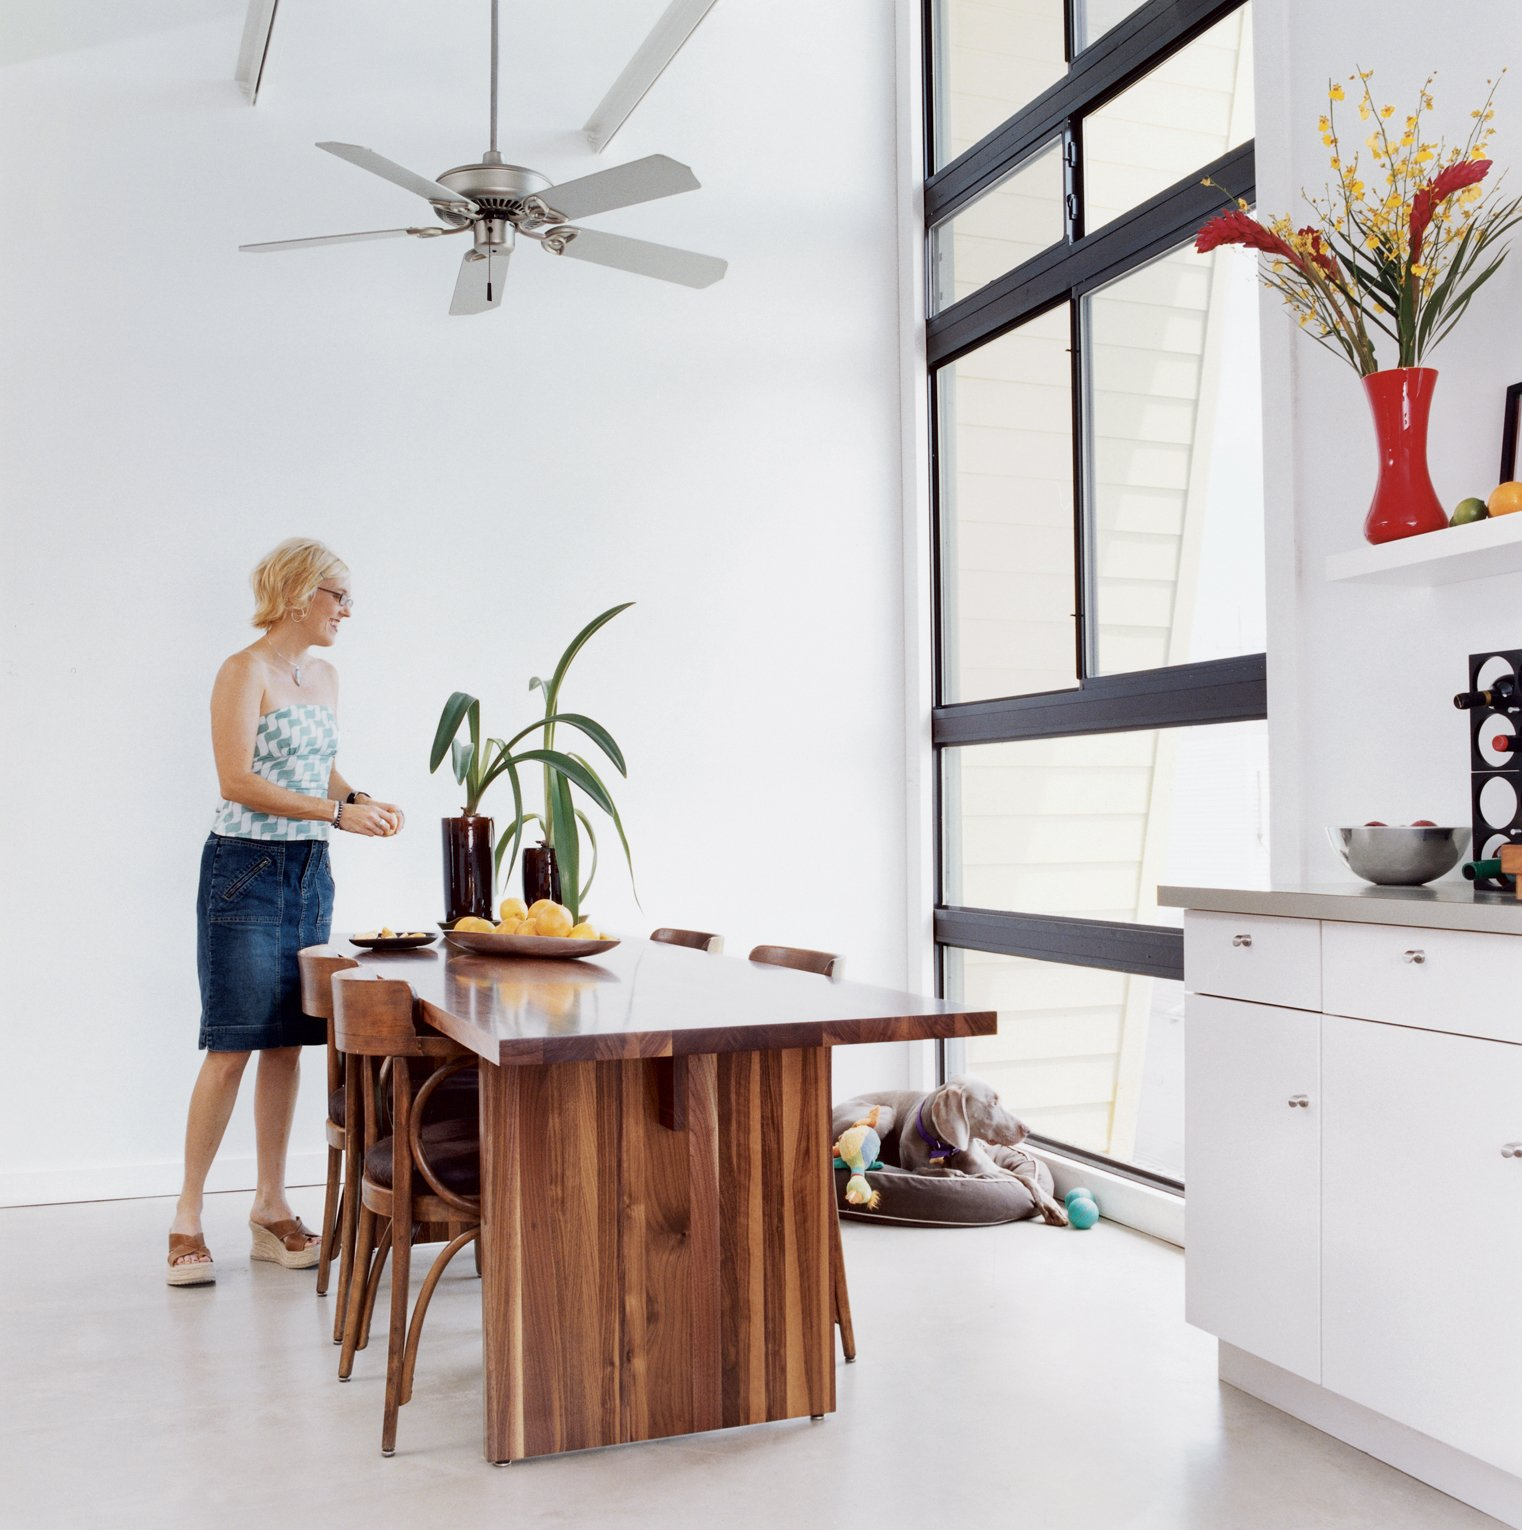 Custom furniture softens the house's aesthetics, including a dining table by AXIS Millwork and Fabrications. Ceiling fan by Craftmade.  Photo 3 of 10 in Big Easy Living